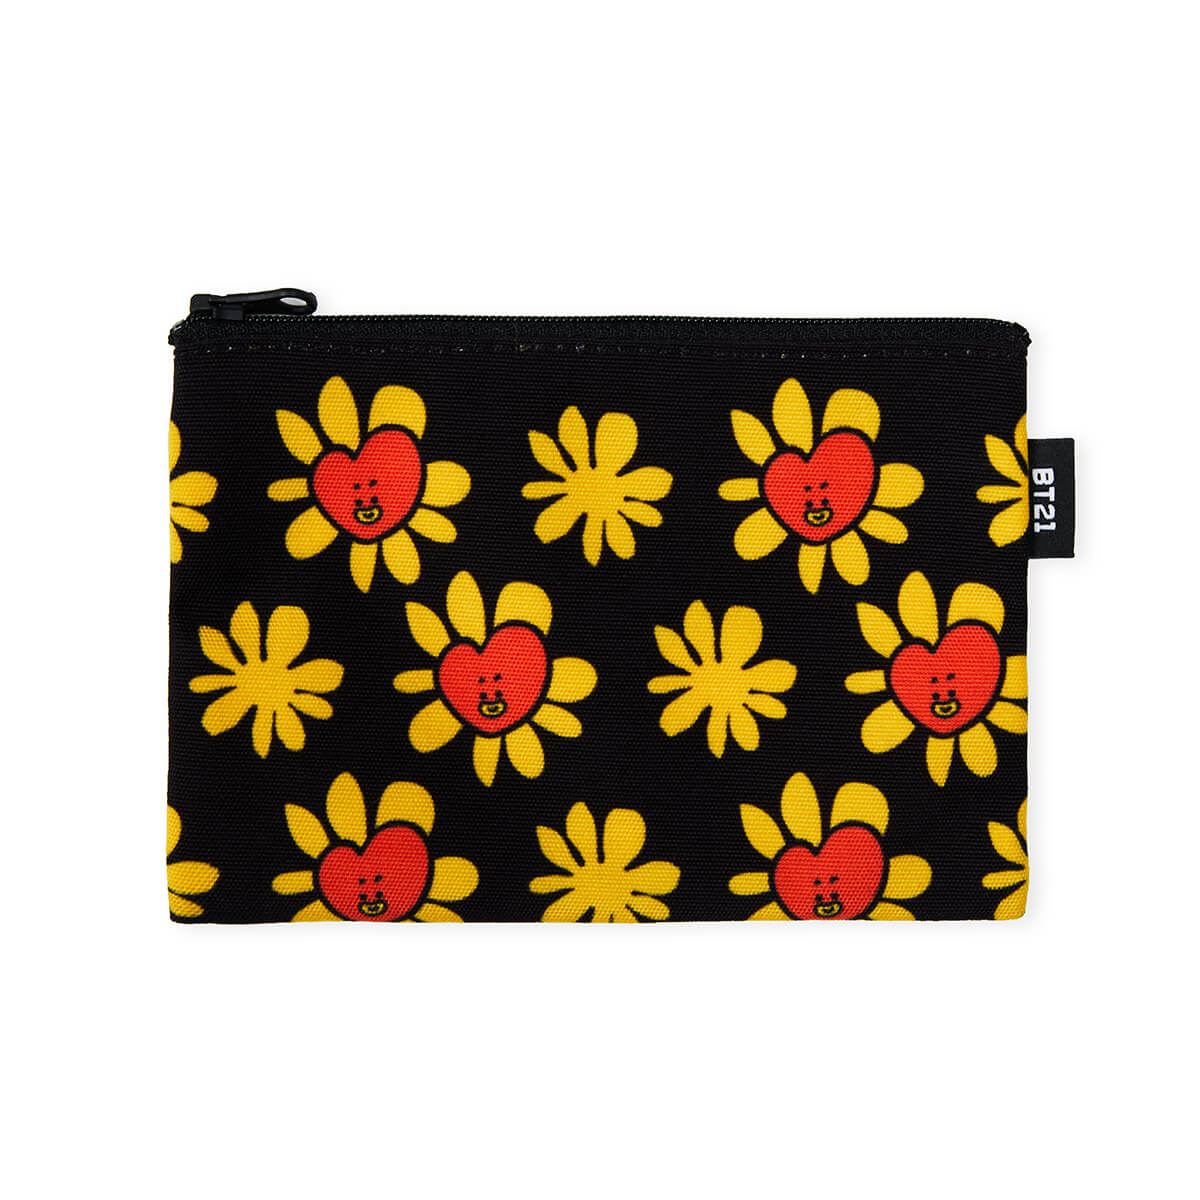 BT21 TATA Flower Pattern Mini Pouch Black